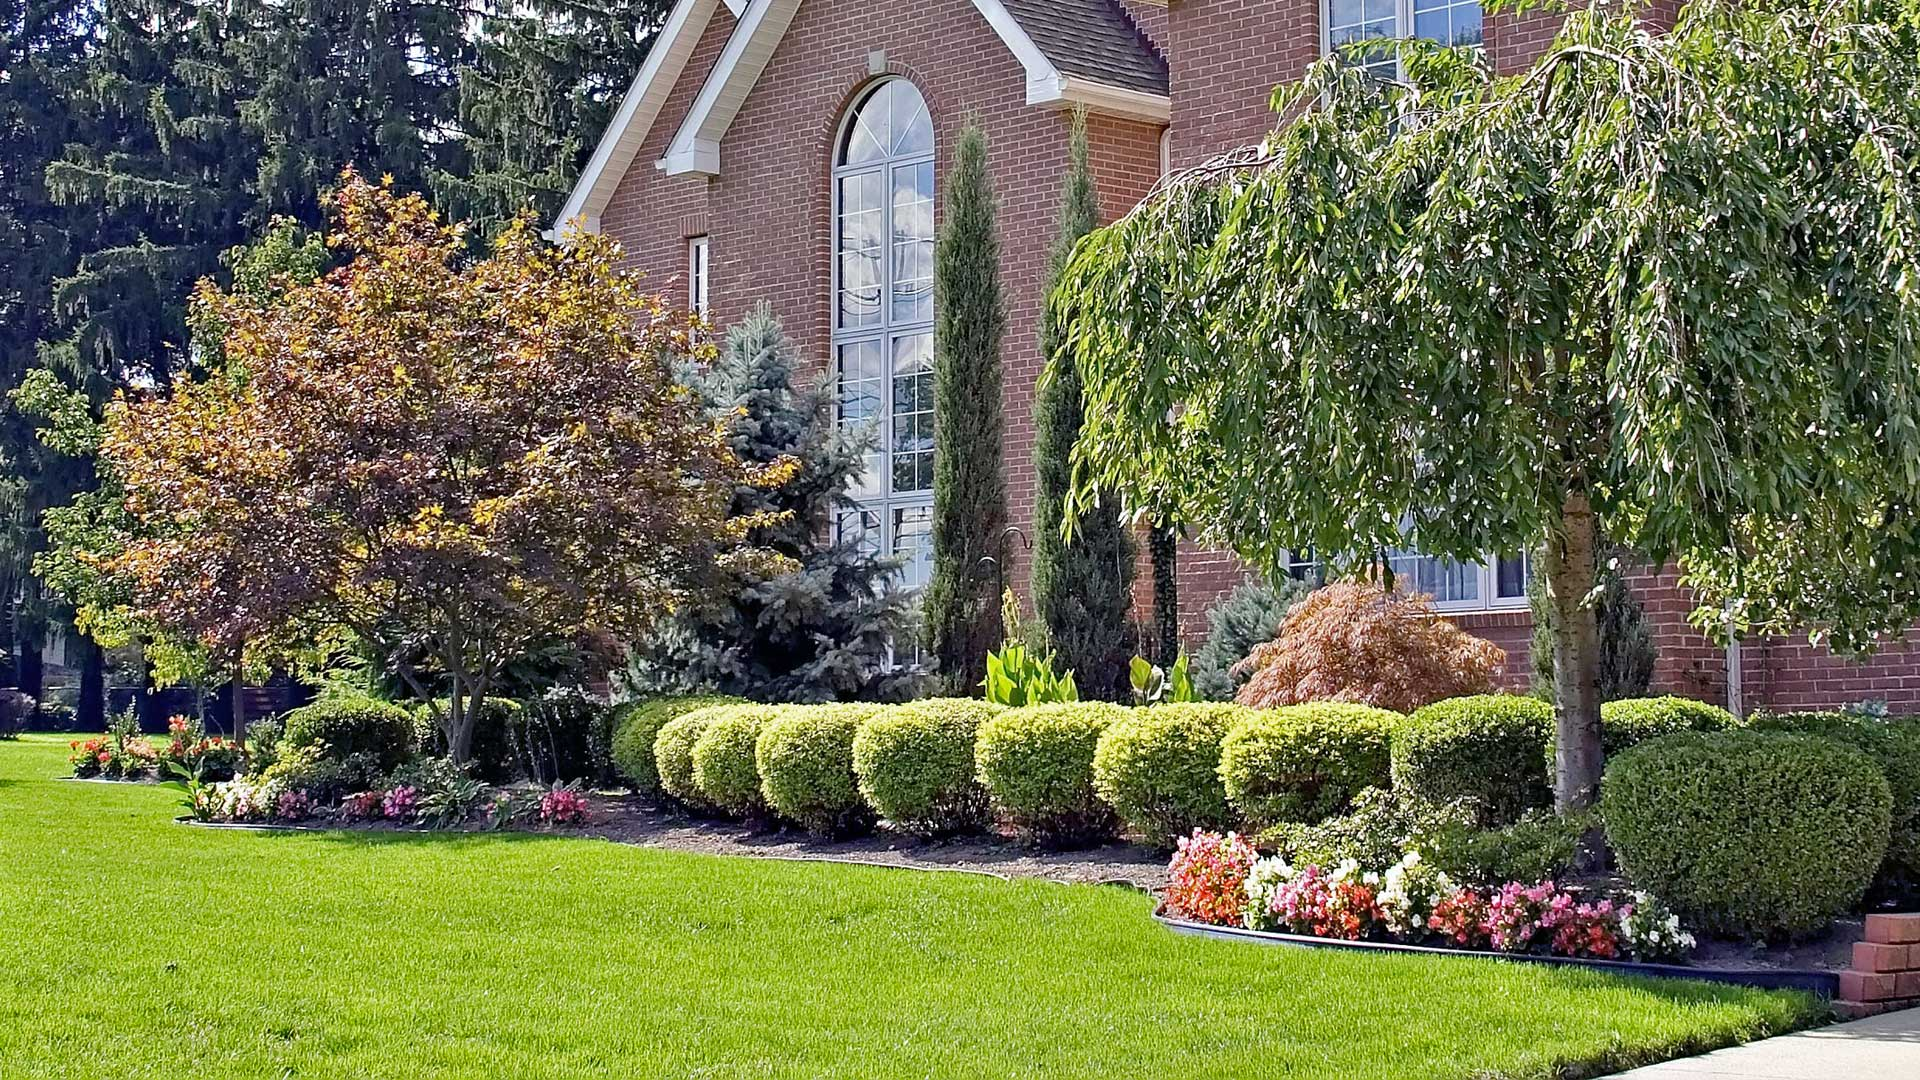 Professional landscaping in front of a Highland home.